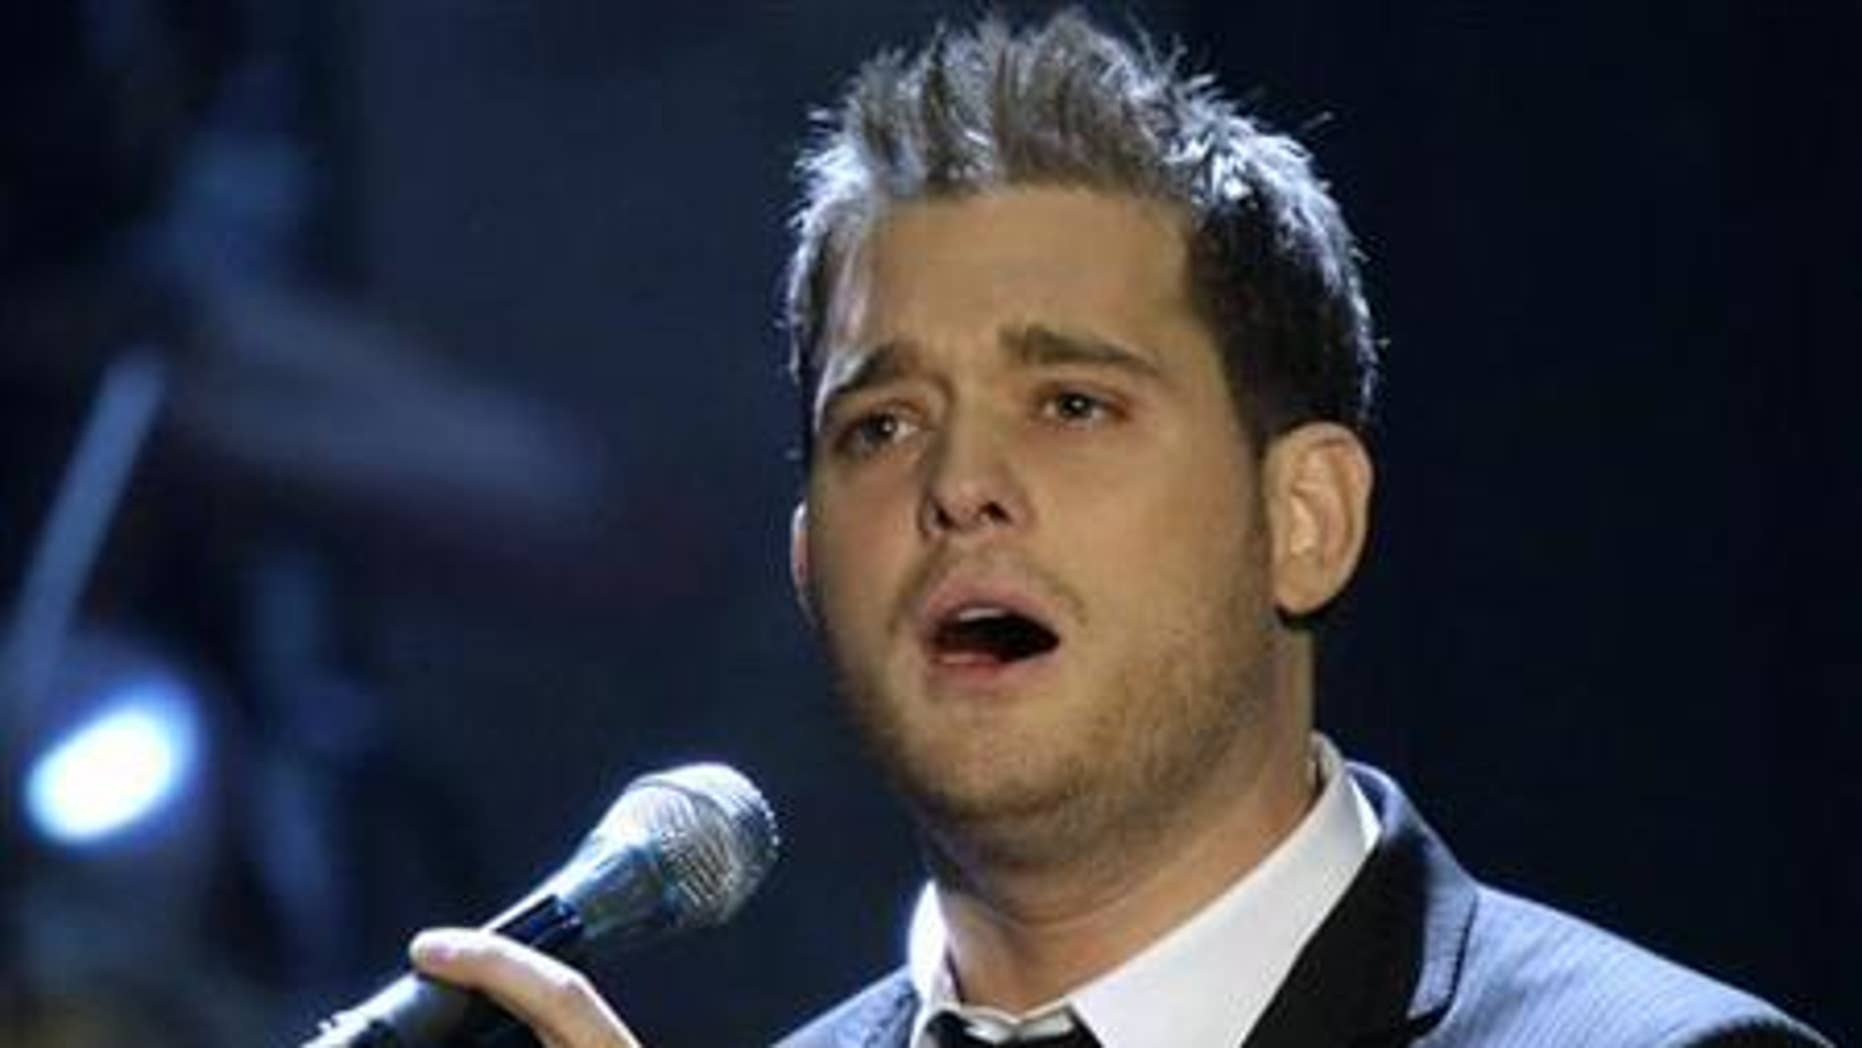 """Canadian singer and songwriter Michael Buble performs his song """"Lost"""" during the TV show """"Wetten, dass..?"""" (Bet it..?) in the eastern German city of Leipzig November 10, 2007. REUTERS/Eckehard Schulz/Pool"""